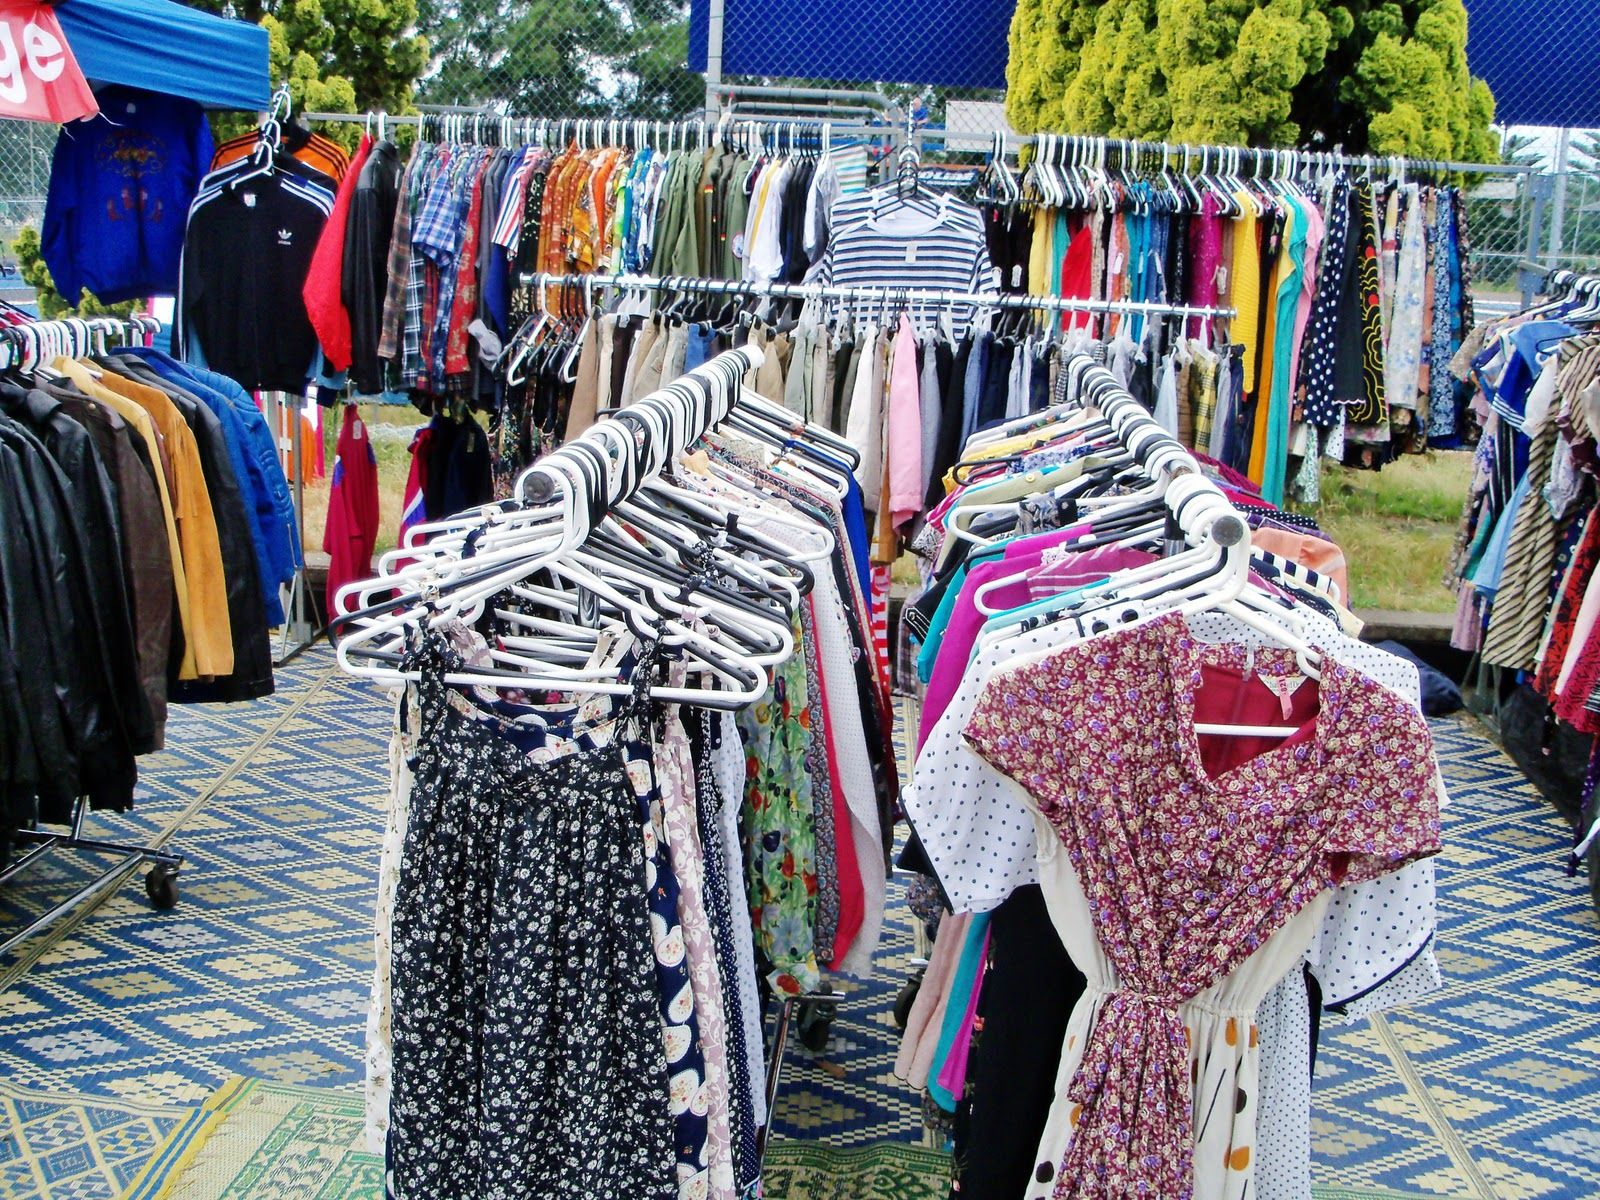 Glebe Markets Open On Saturdays This Lively Market Sells Jewelry Art Vintage Clothing Handicrafts And Street Food To Th Vintage Outfits Marketing Shopping